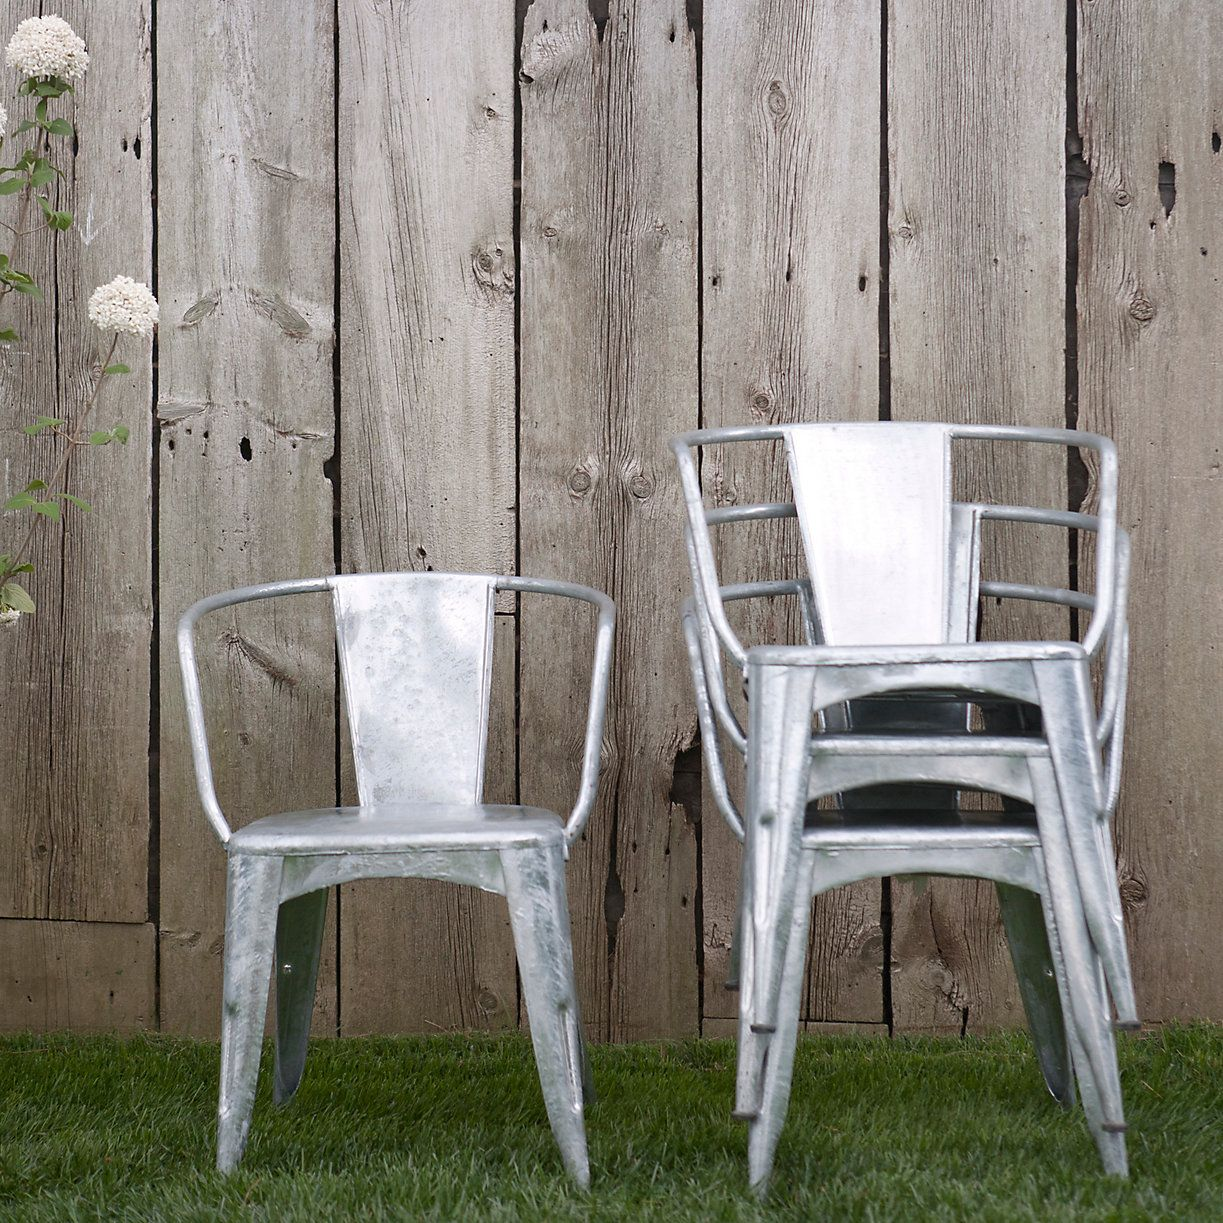 Living Accents Metropolitan Patio Furniture: Outdoor Living, Patio And For The